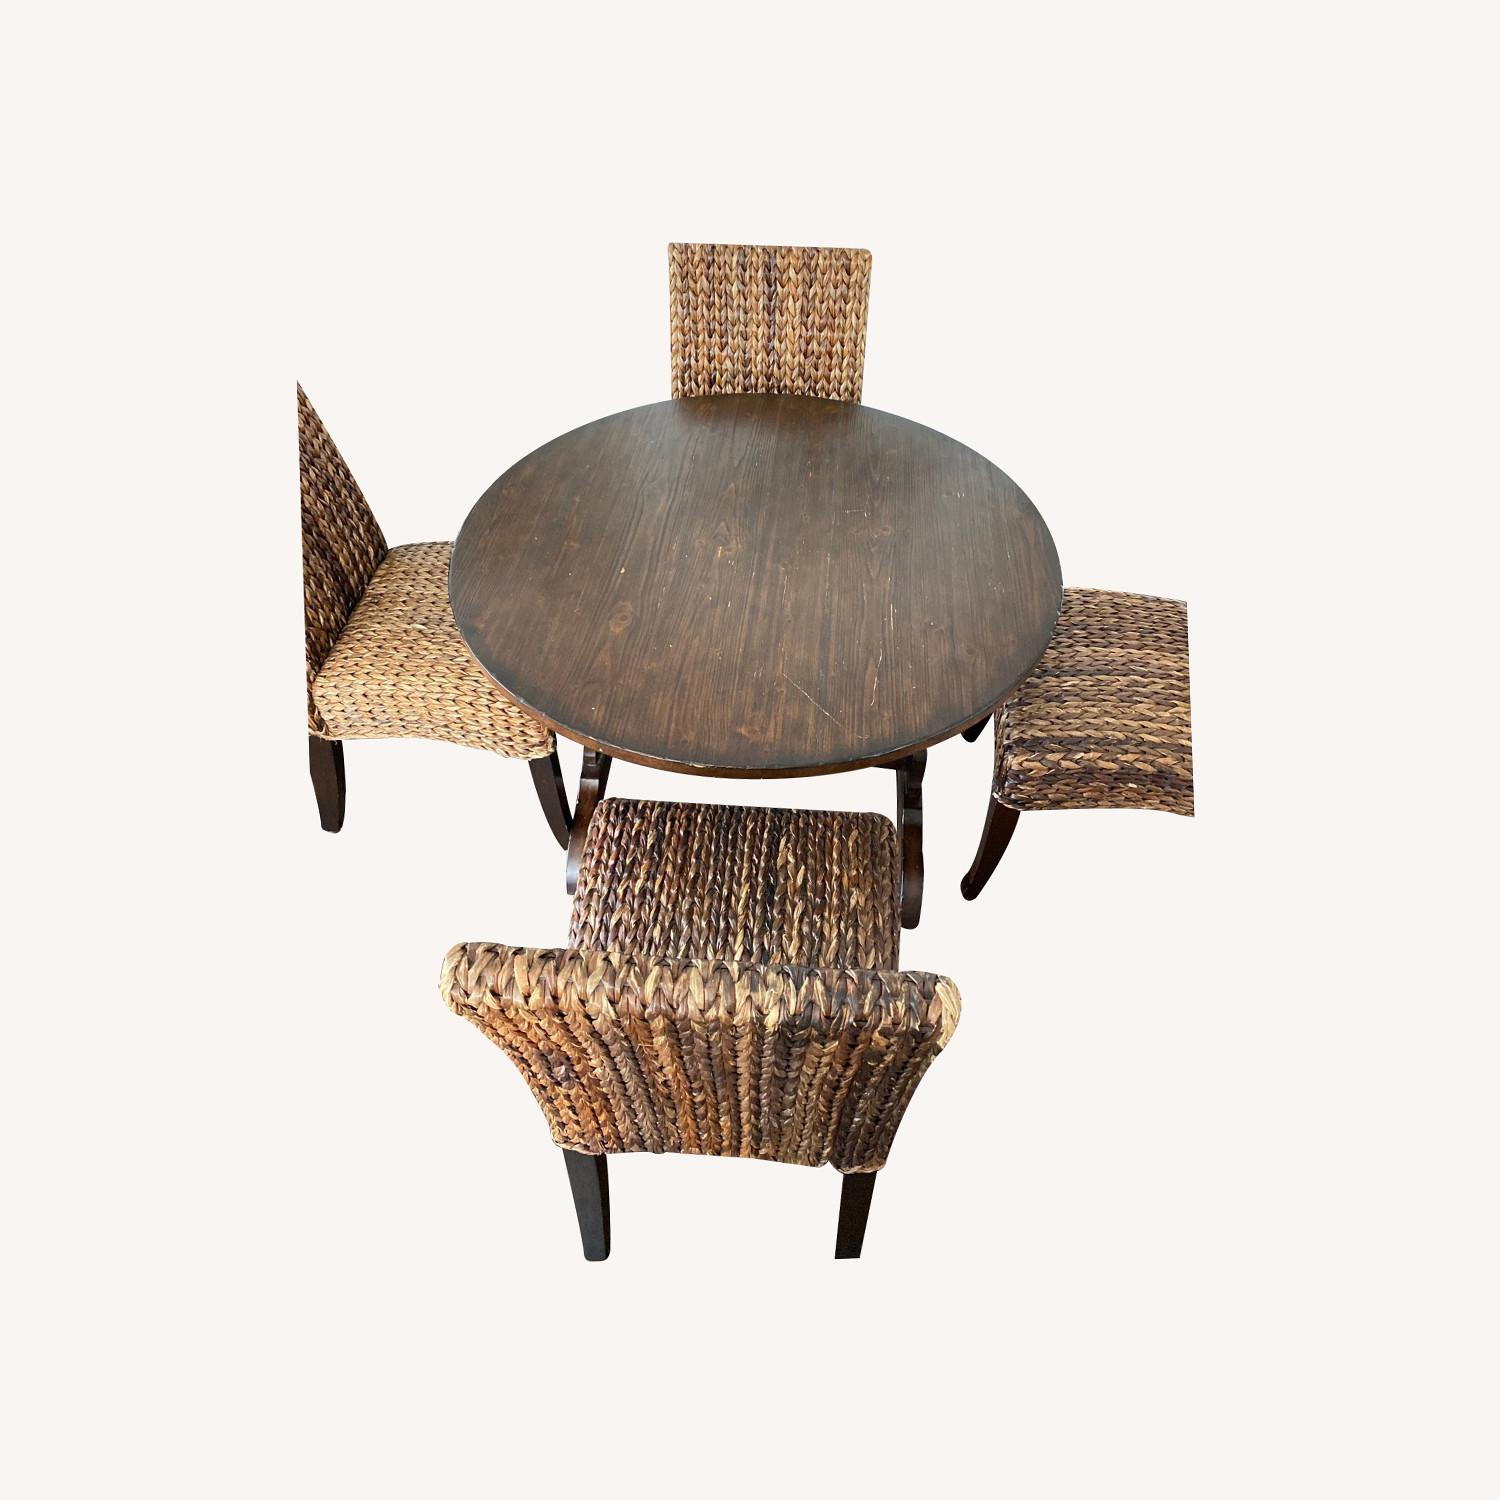 Pottery Barn Dining Table and Seagrass Chair Set - image-0